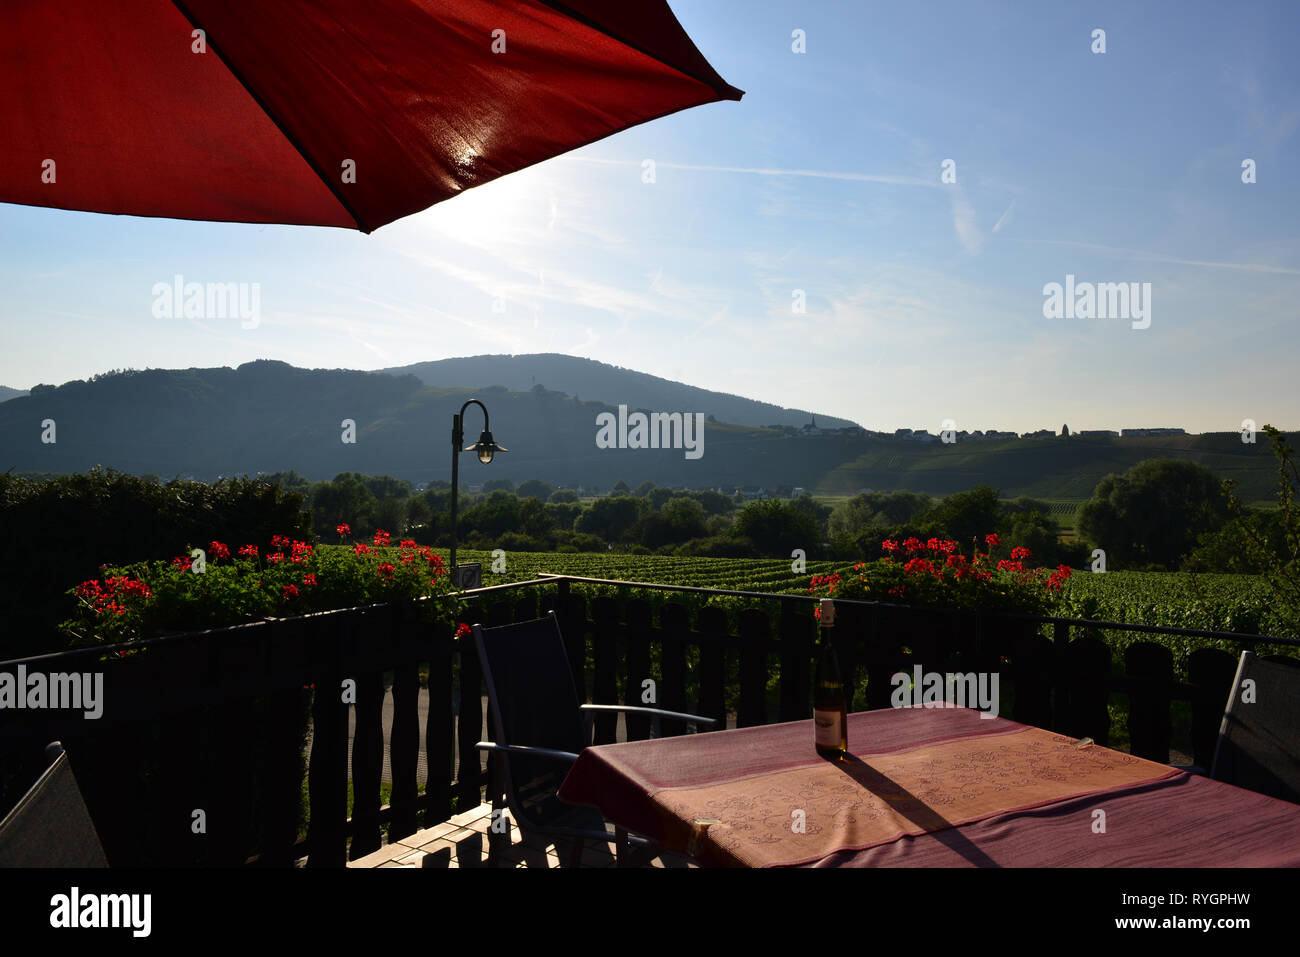 View from hotel near the Braunebreg village, to  Mosel river valley, Germany - Stock Image